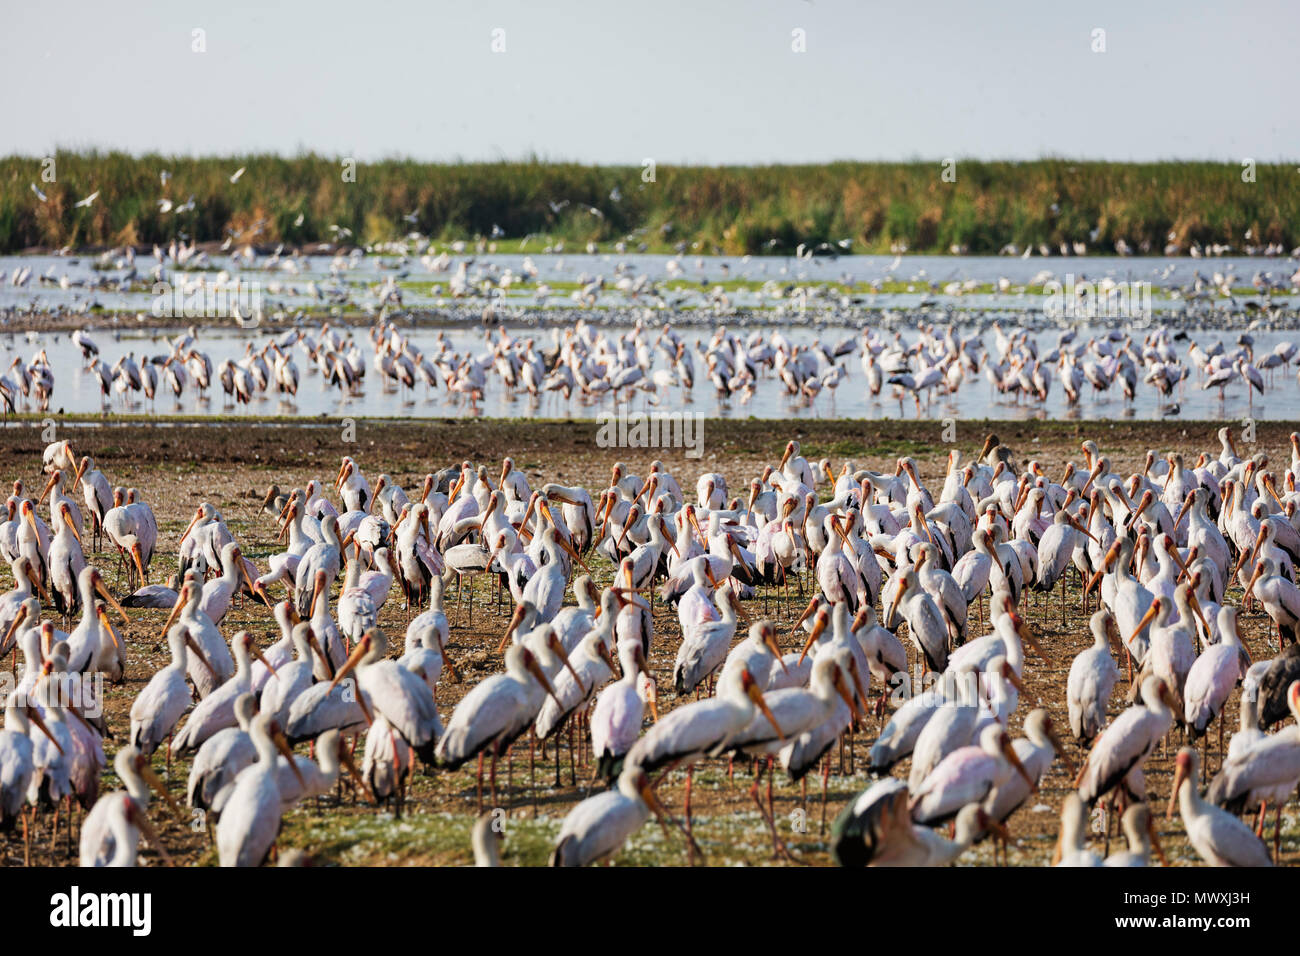 Yellow billed stork (Mycteria ibis), Lake Manyara National Park, Tanzania, East Africa, Africa - Stock Image